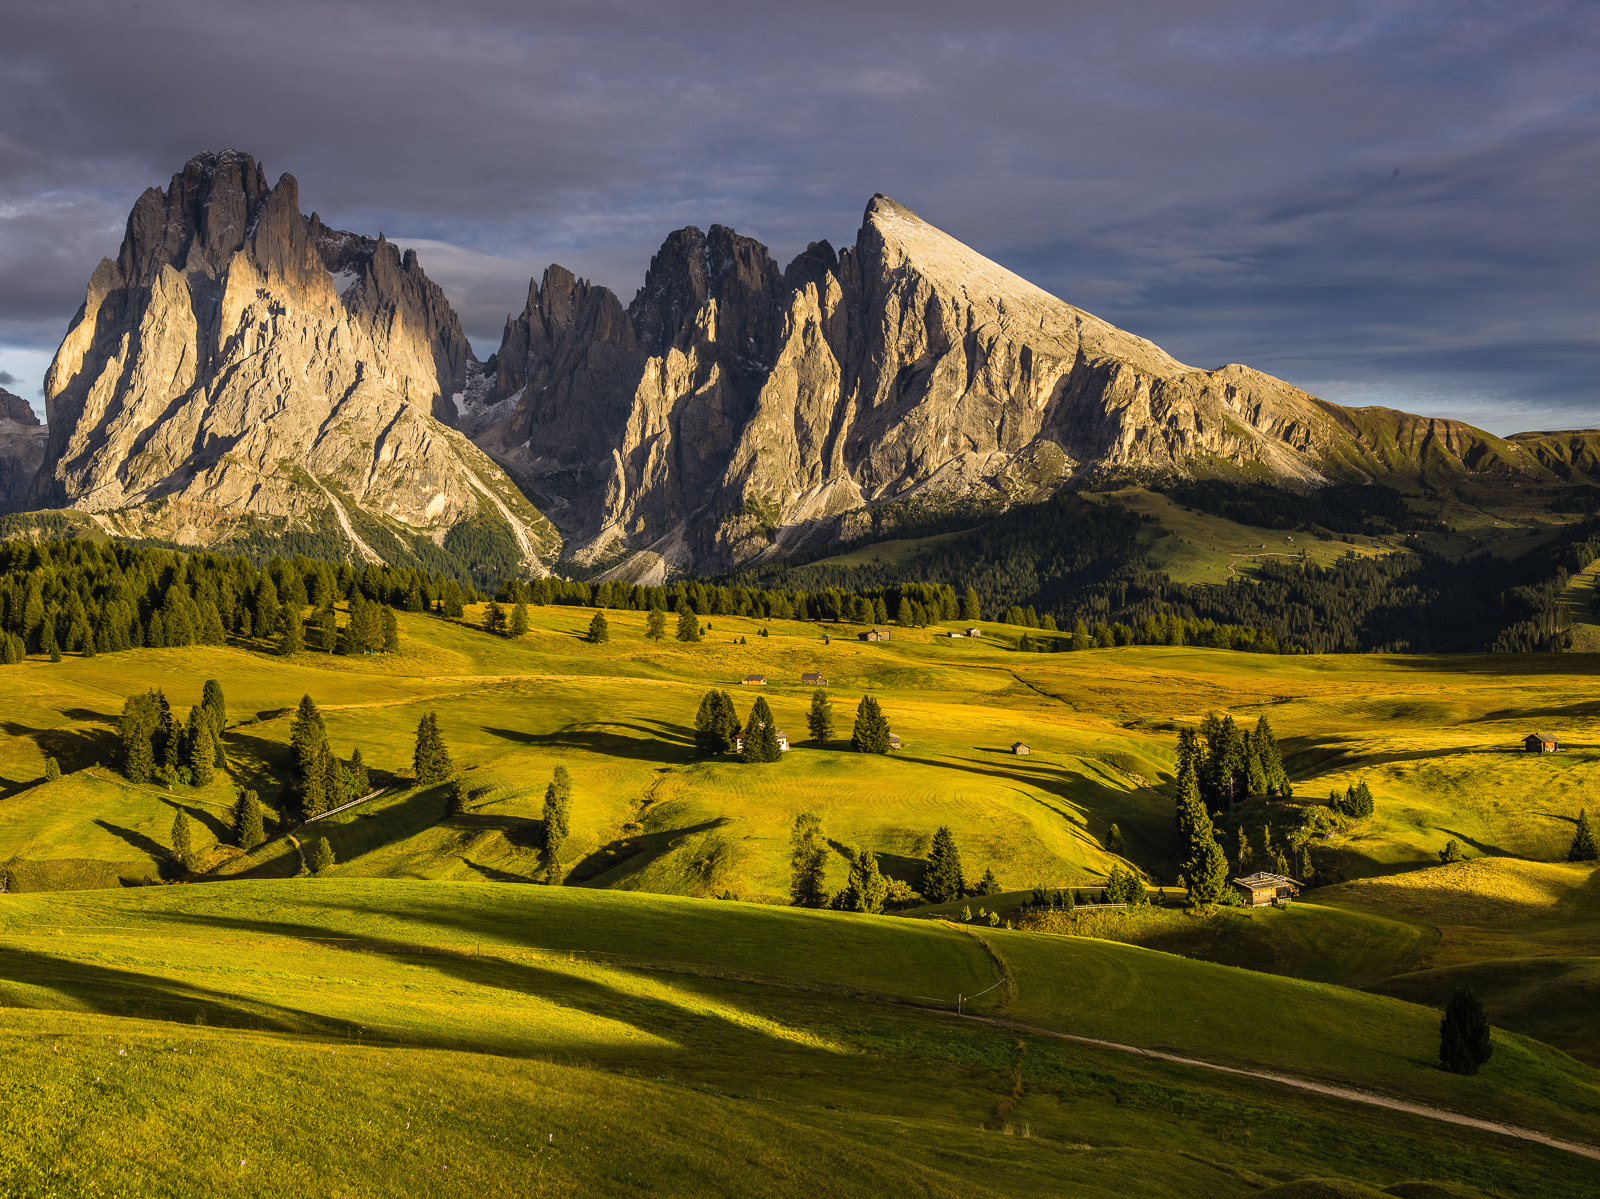 Photograph Shadows from setting sun over Alpe di Siusi by Hans Kruse on 500px